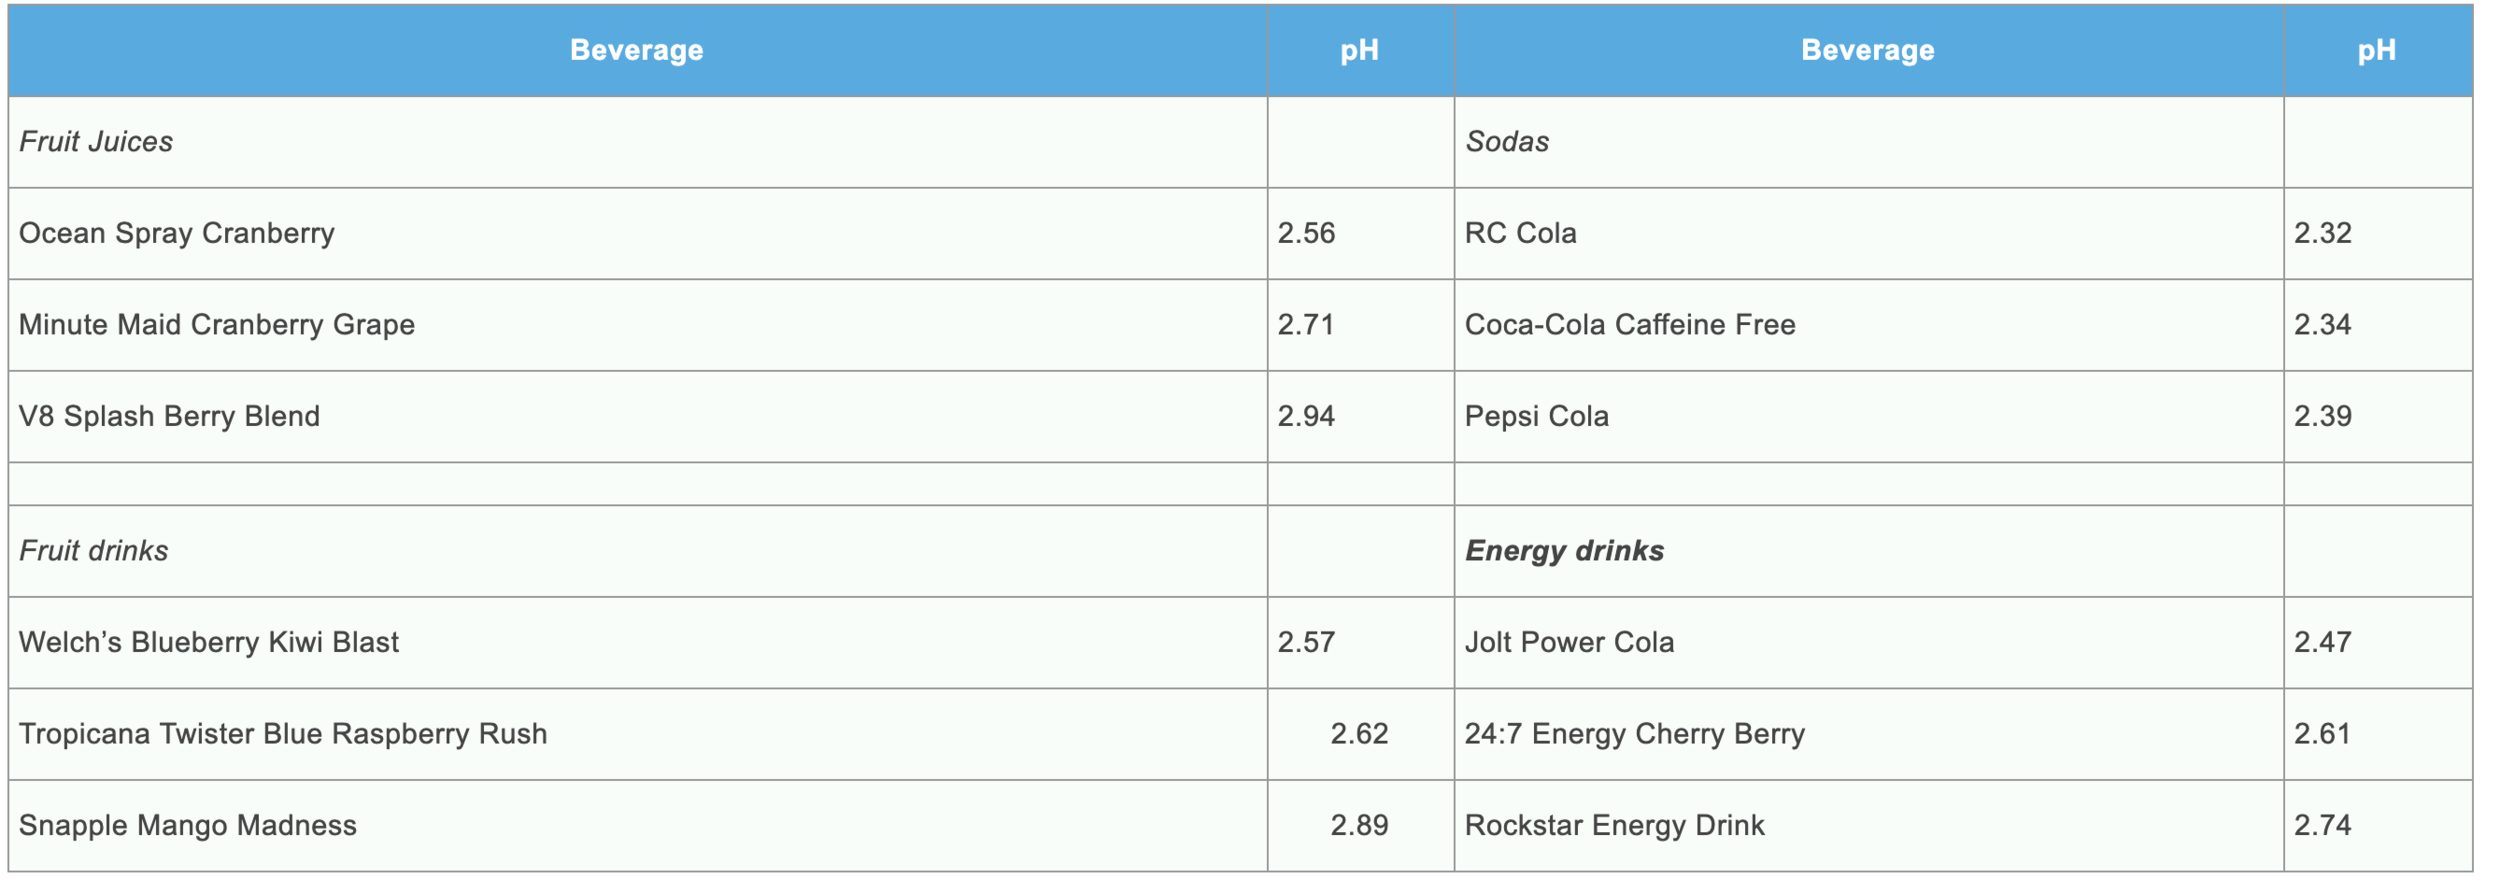 Acidity-in-beverages-that-cause-cavities